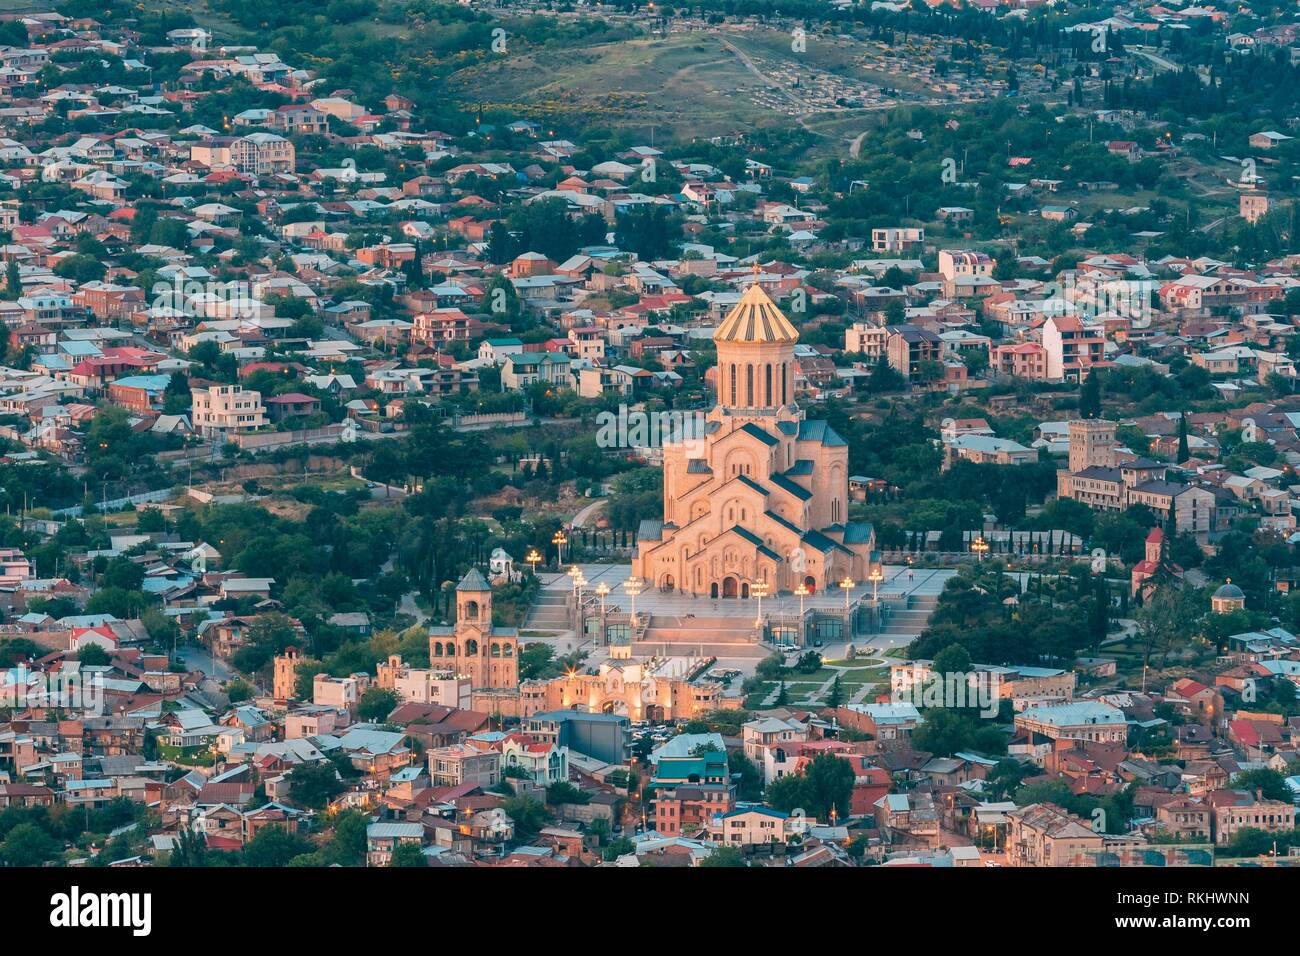 Tbilisi, Georgia. Evening Aerial Panoramic View Of Sameba Complex, Holy Trinity Cathedral Surrounded By Populous Residential Area In Summer Dusk. Stock Photo